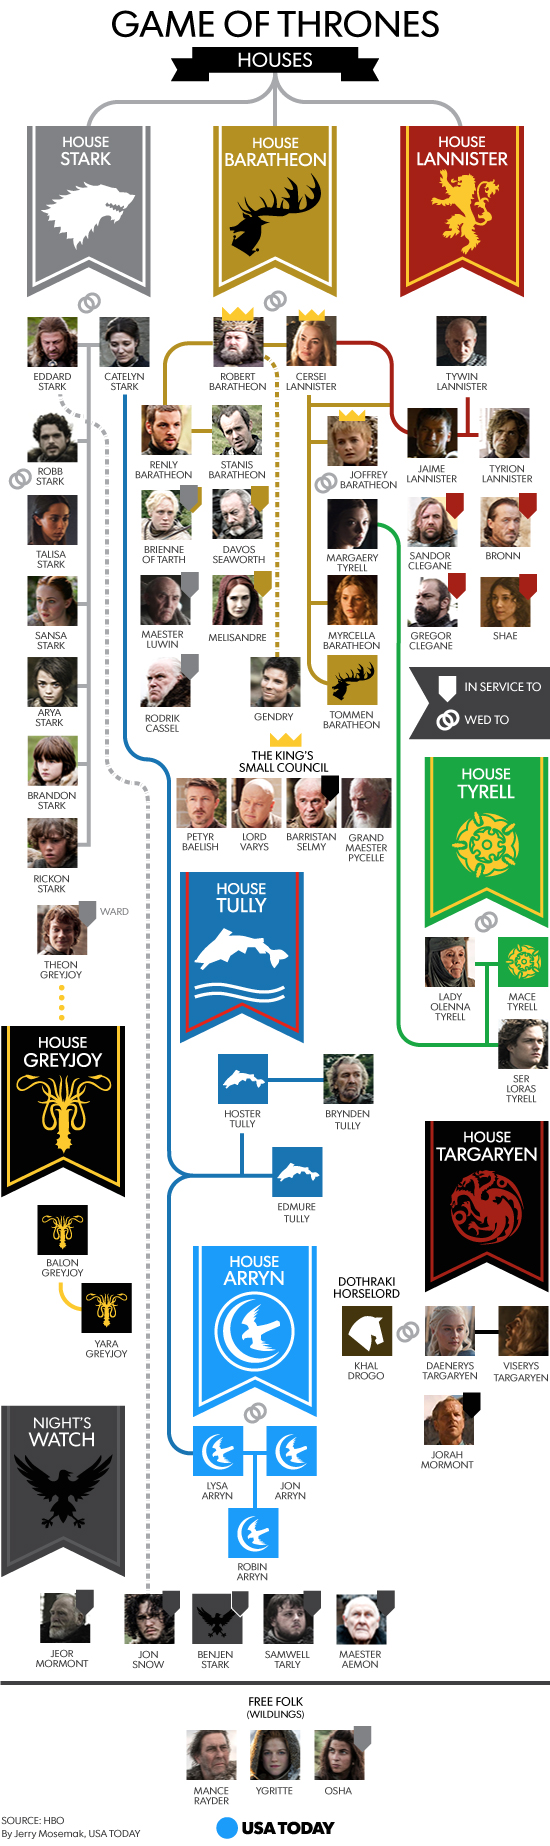 Game Of Thrones Lineage Chart : thrones, lineage, chart, Perias, Movies!, Thrones, Lineage,